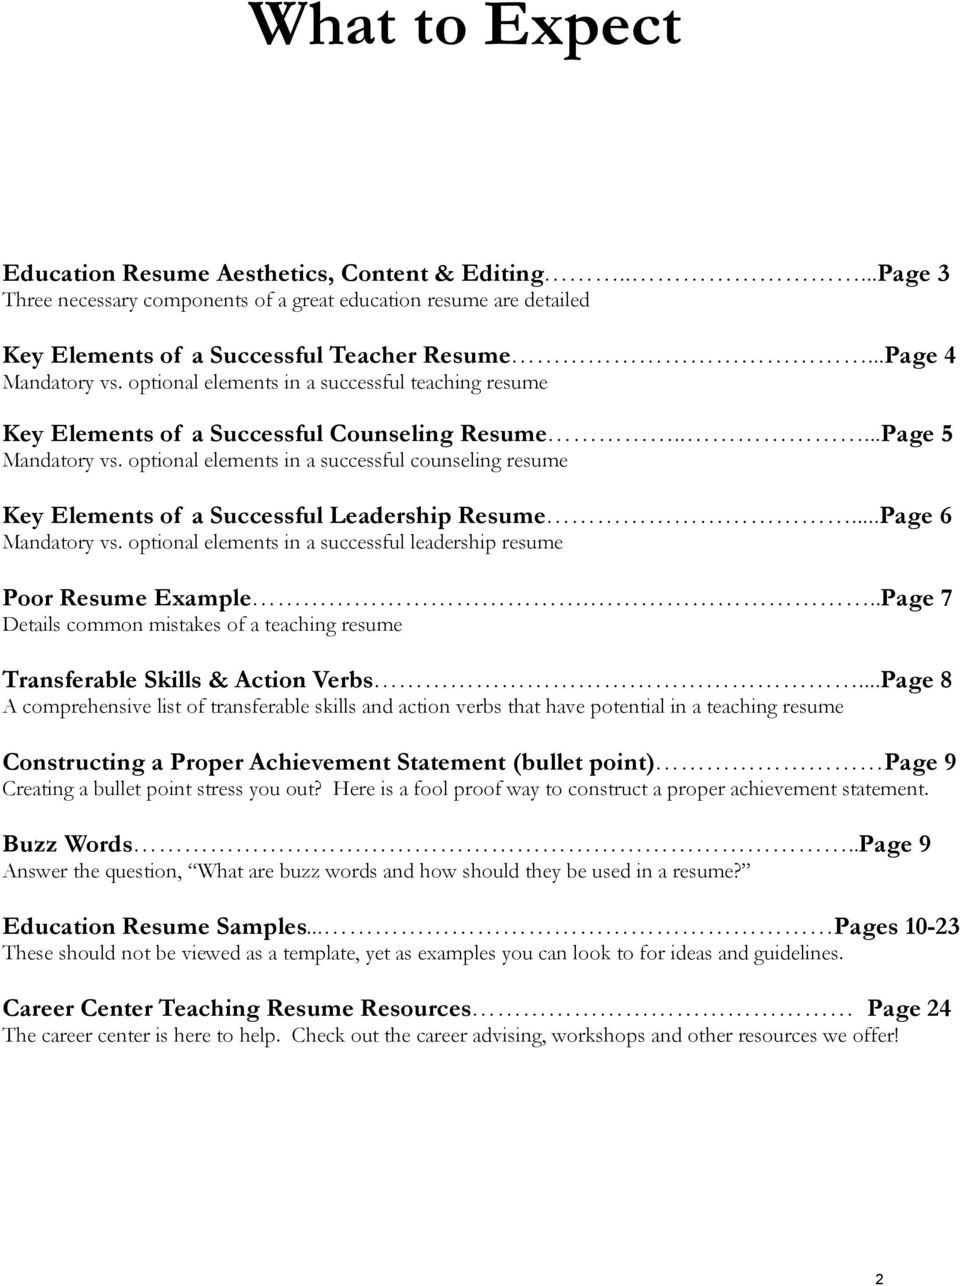 optional elements in a successful counseling resume Key Elements of a Successful Leadership Resume...Page 6 Mandatory vs. optional elements in a successful leadership resume Poor Resume Example.